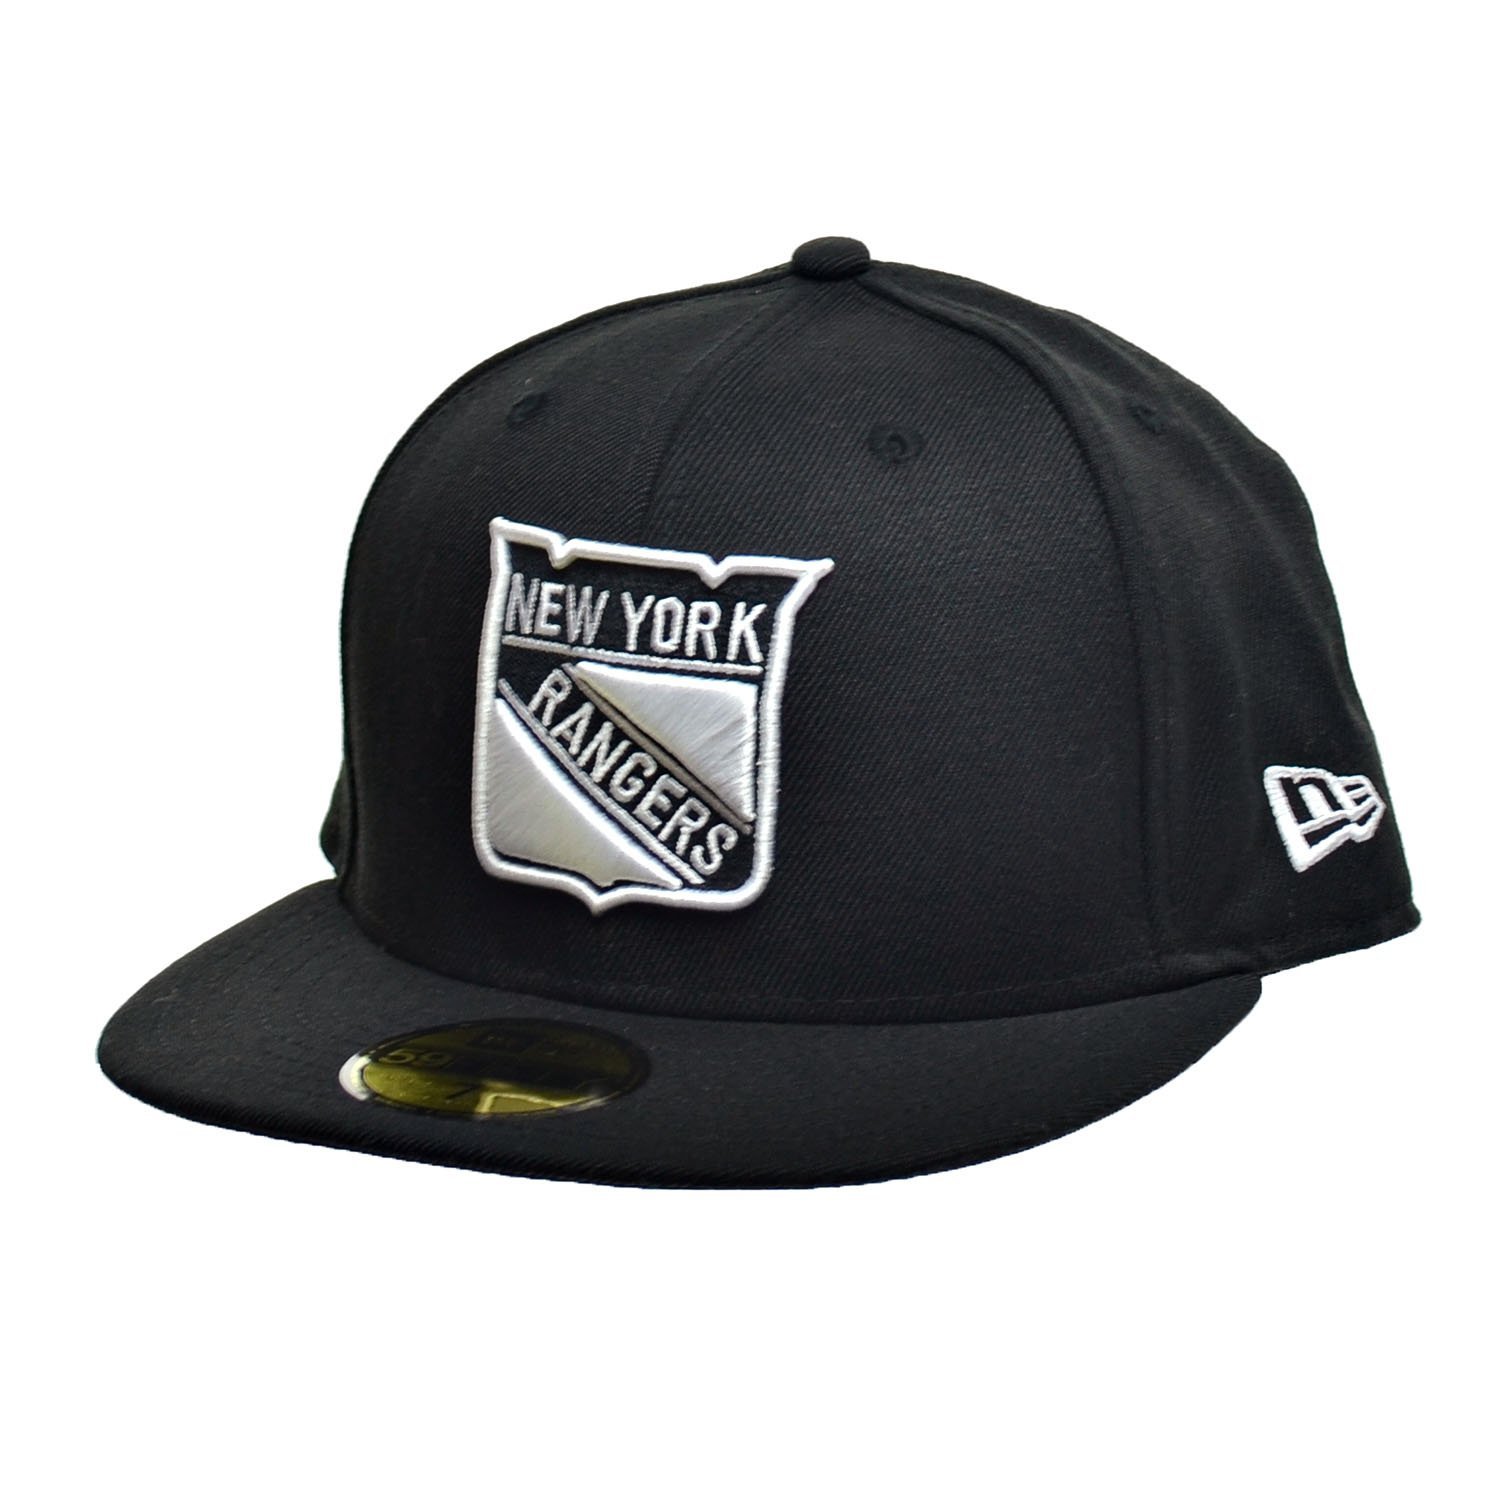 d9a24dda ... denmark hatland exclusive authentic new era snapback and fitted hats  a5015 97542